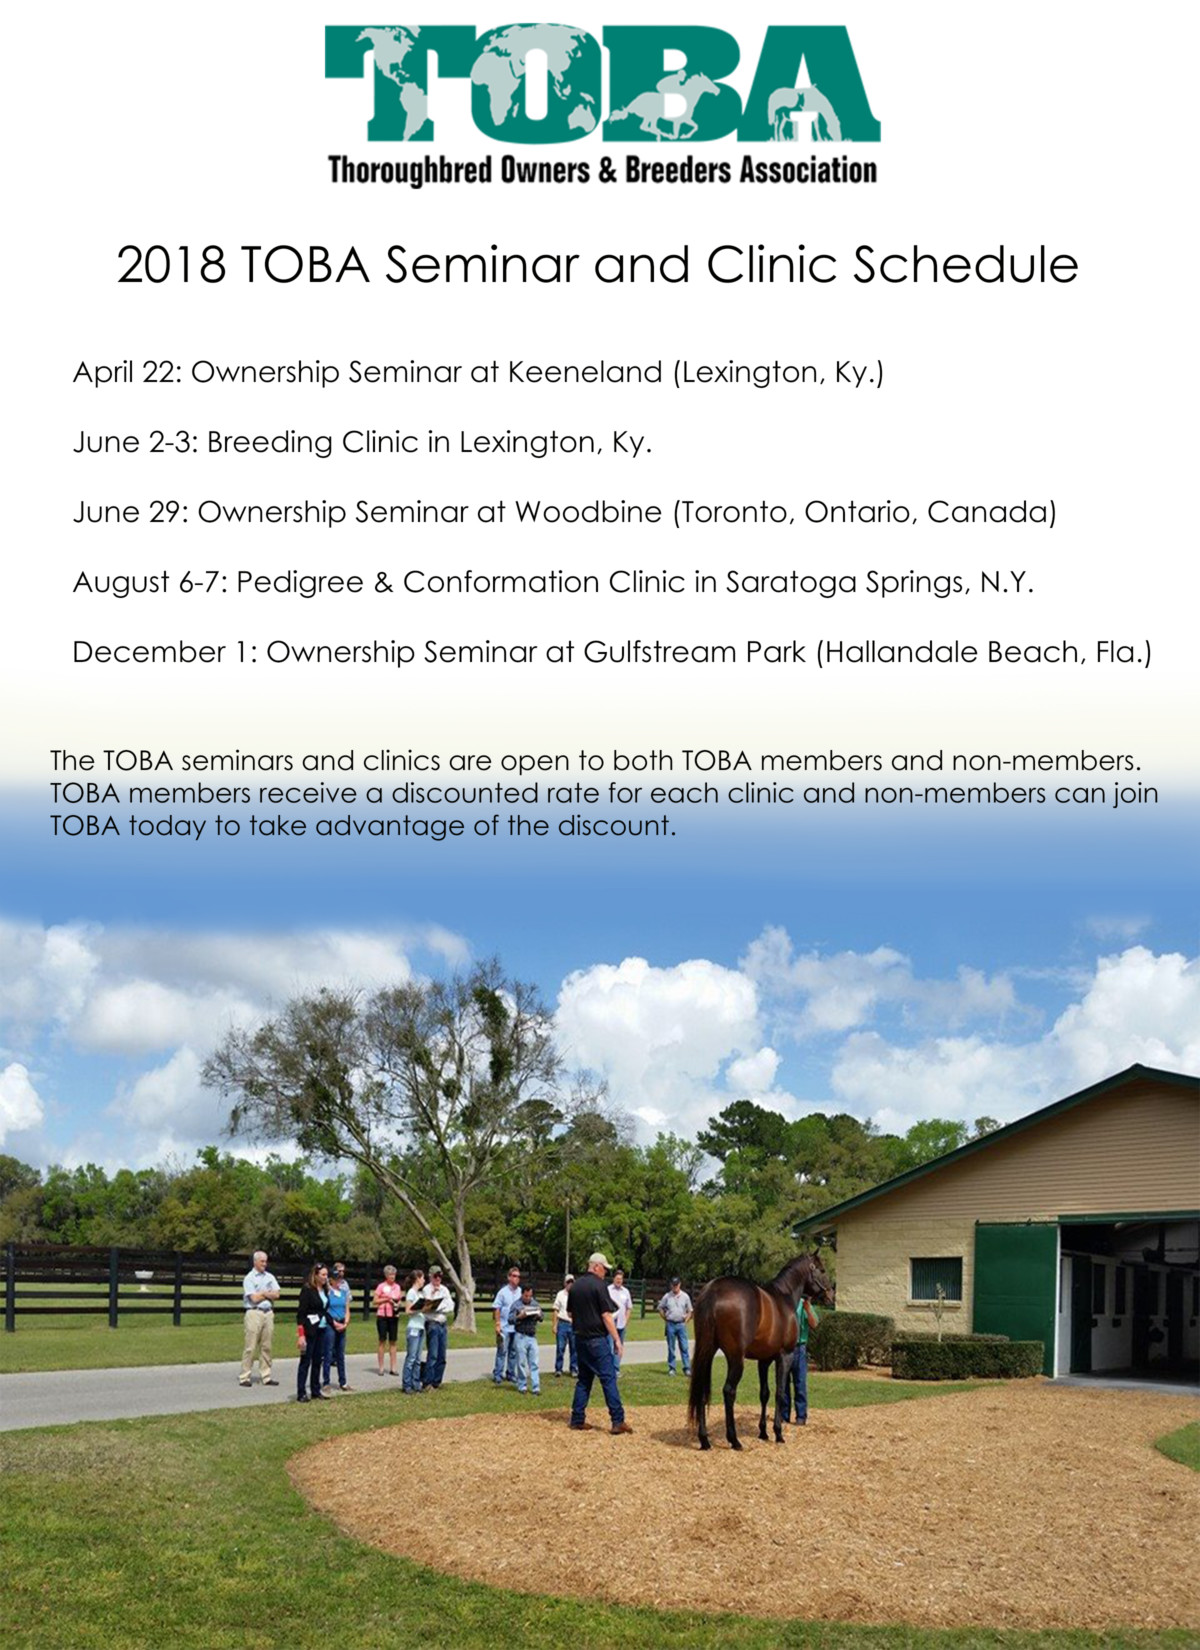 Toba Thoroughbred Owners And Breeders Association